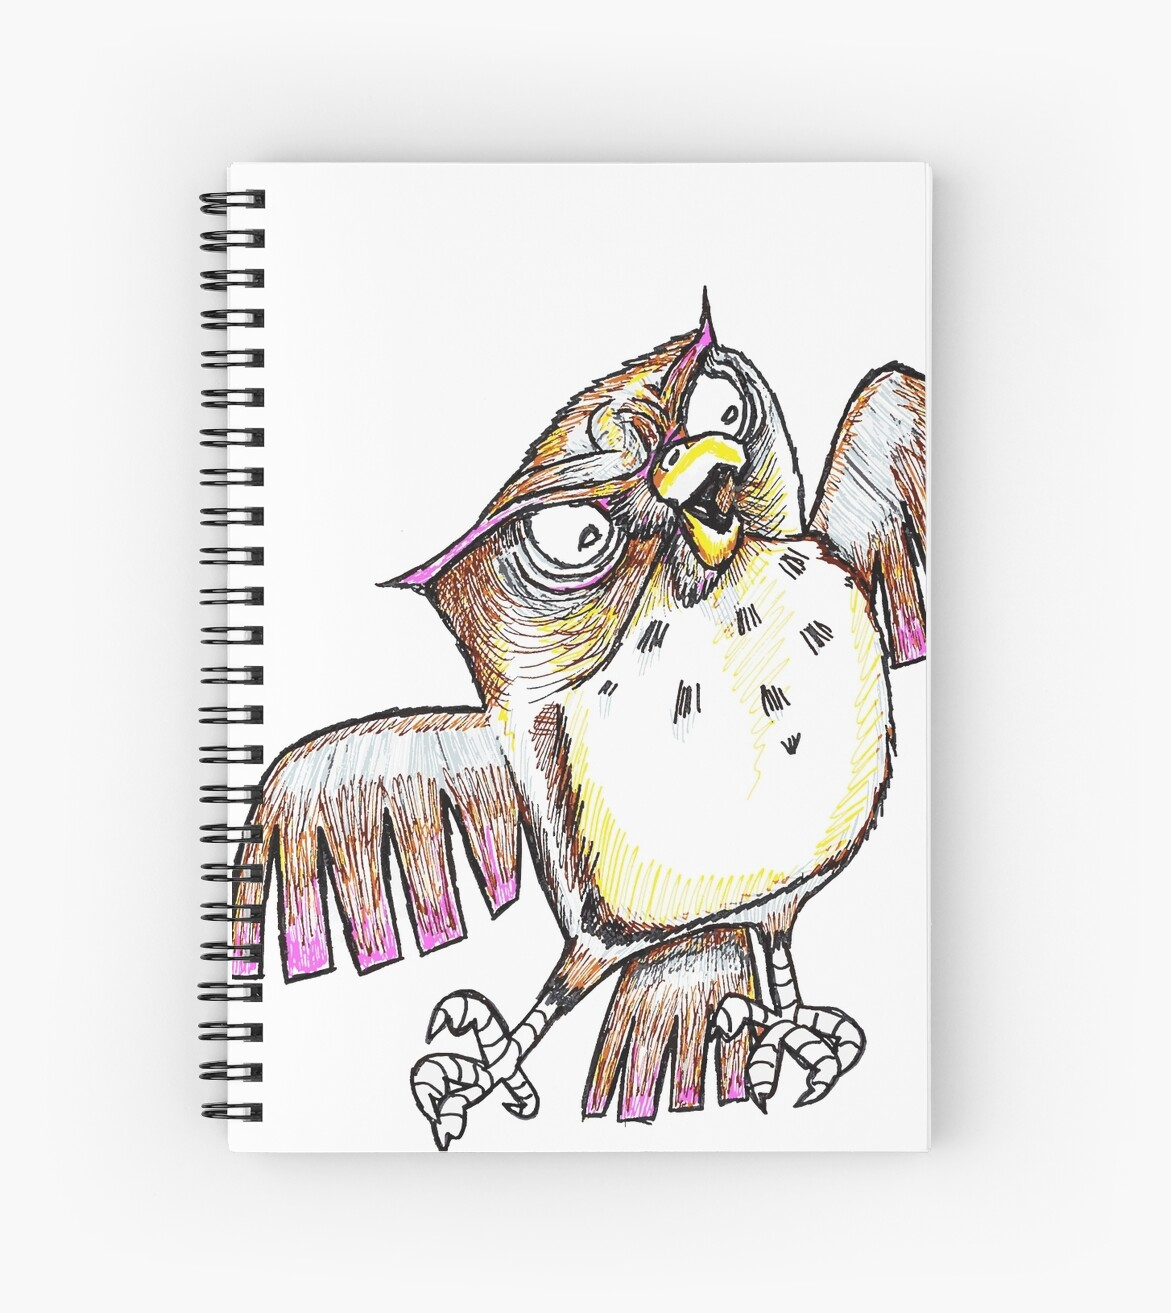 Wise Owl with Gel Pen by Chaparralia